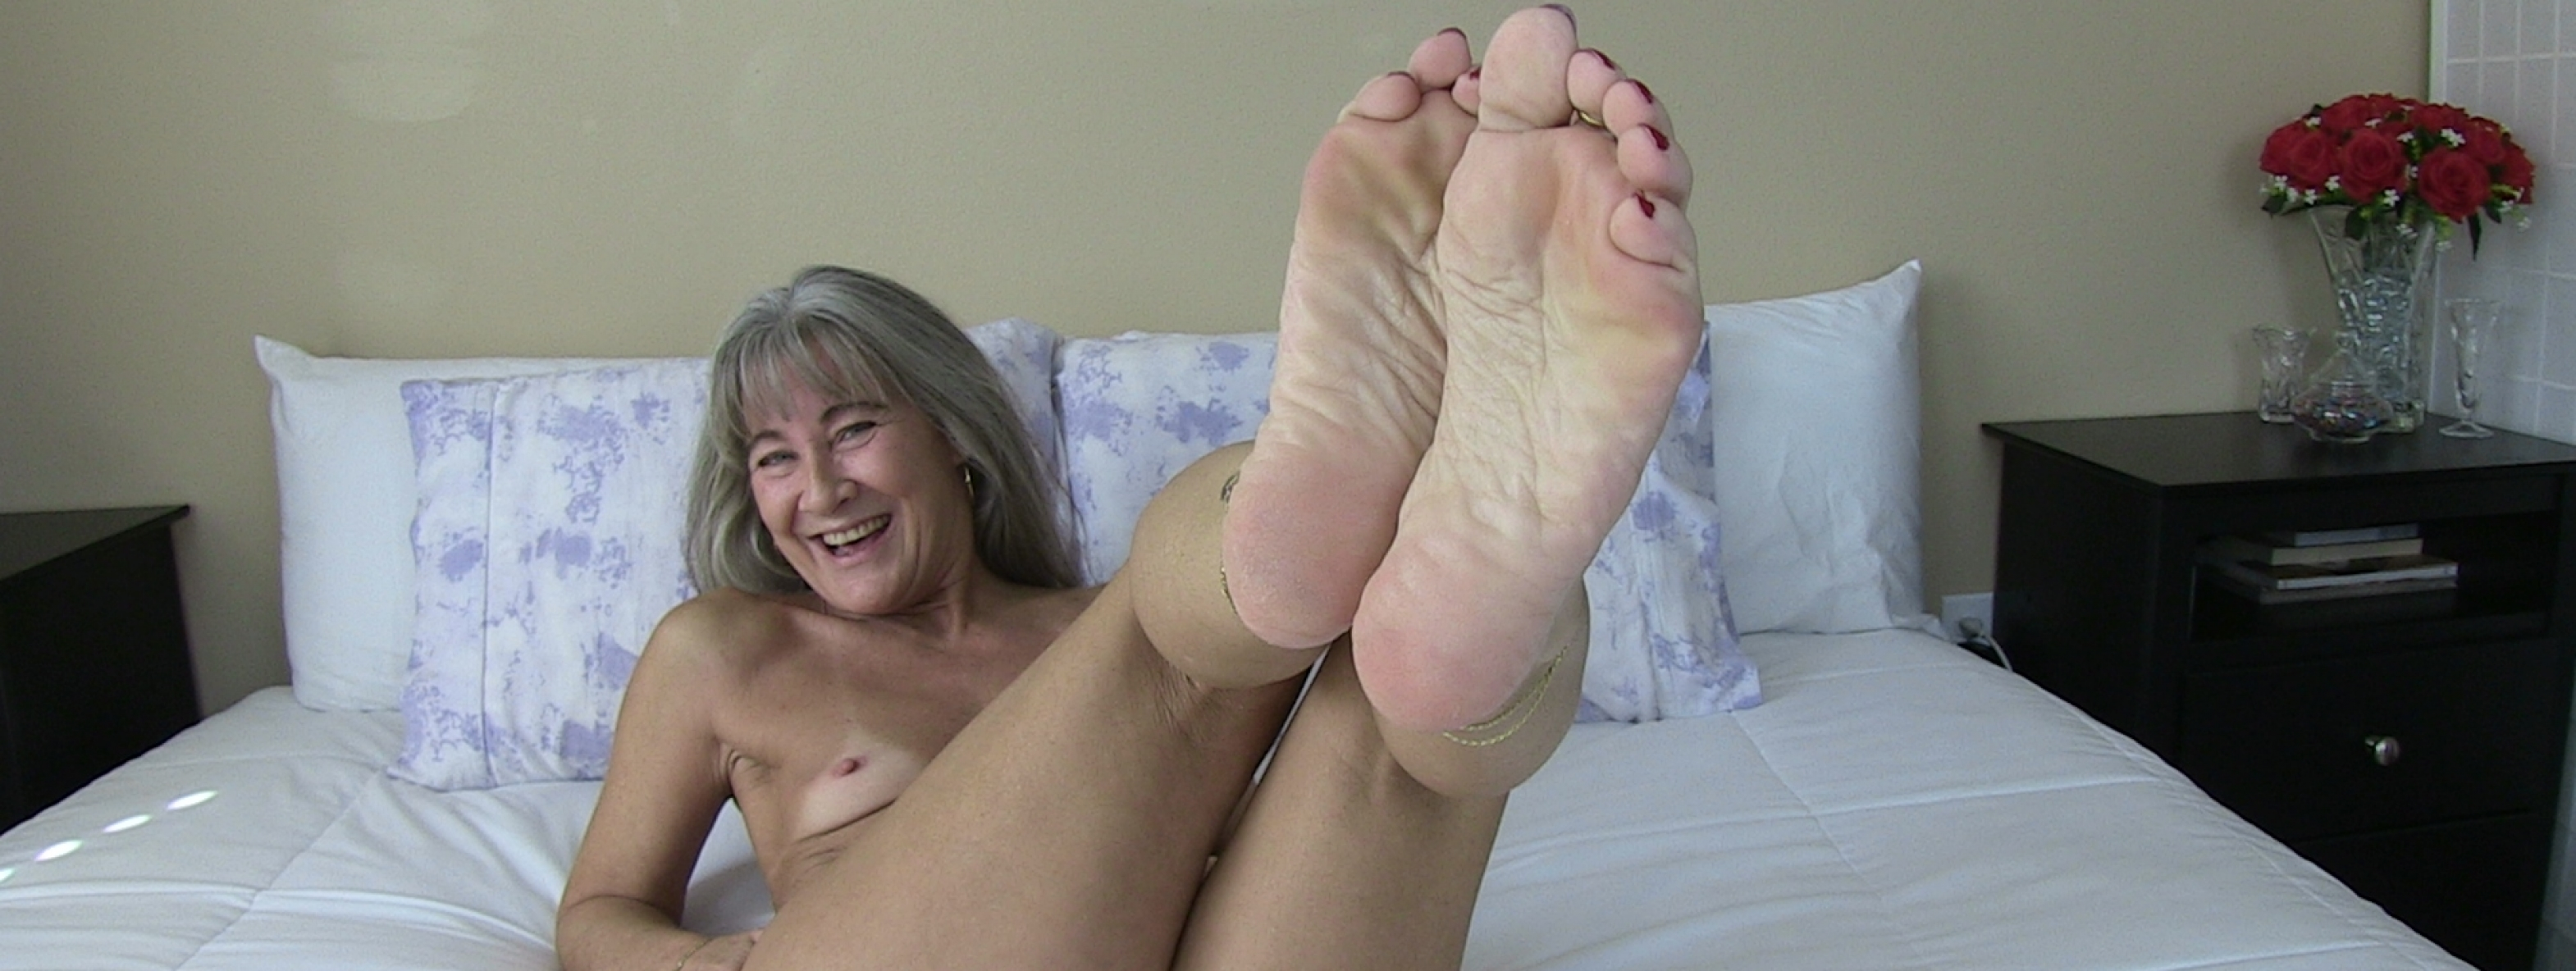 content/pov_foot_worship_joi_10/8.jpg